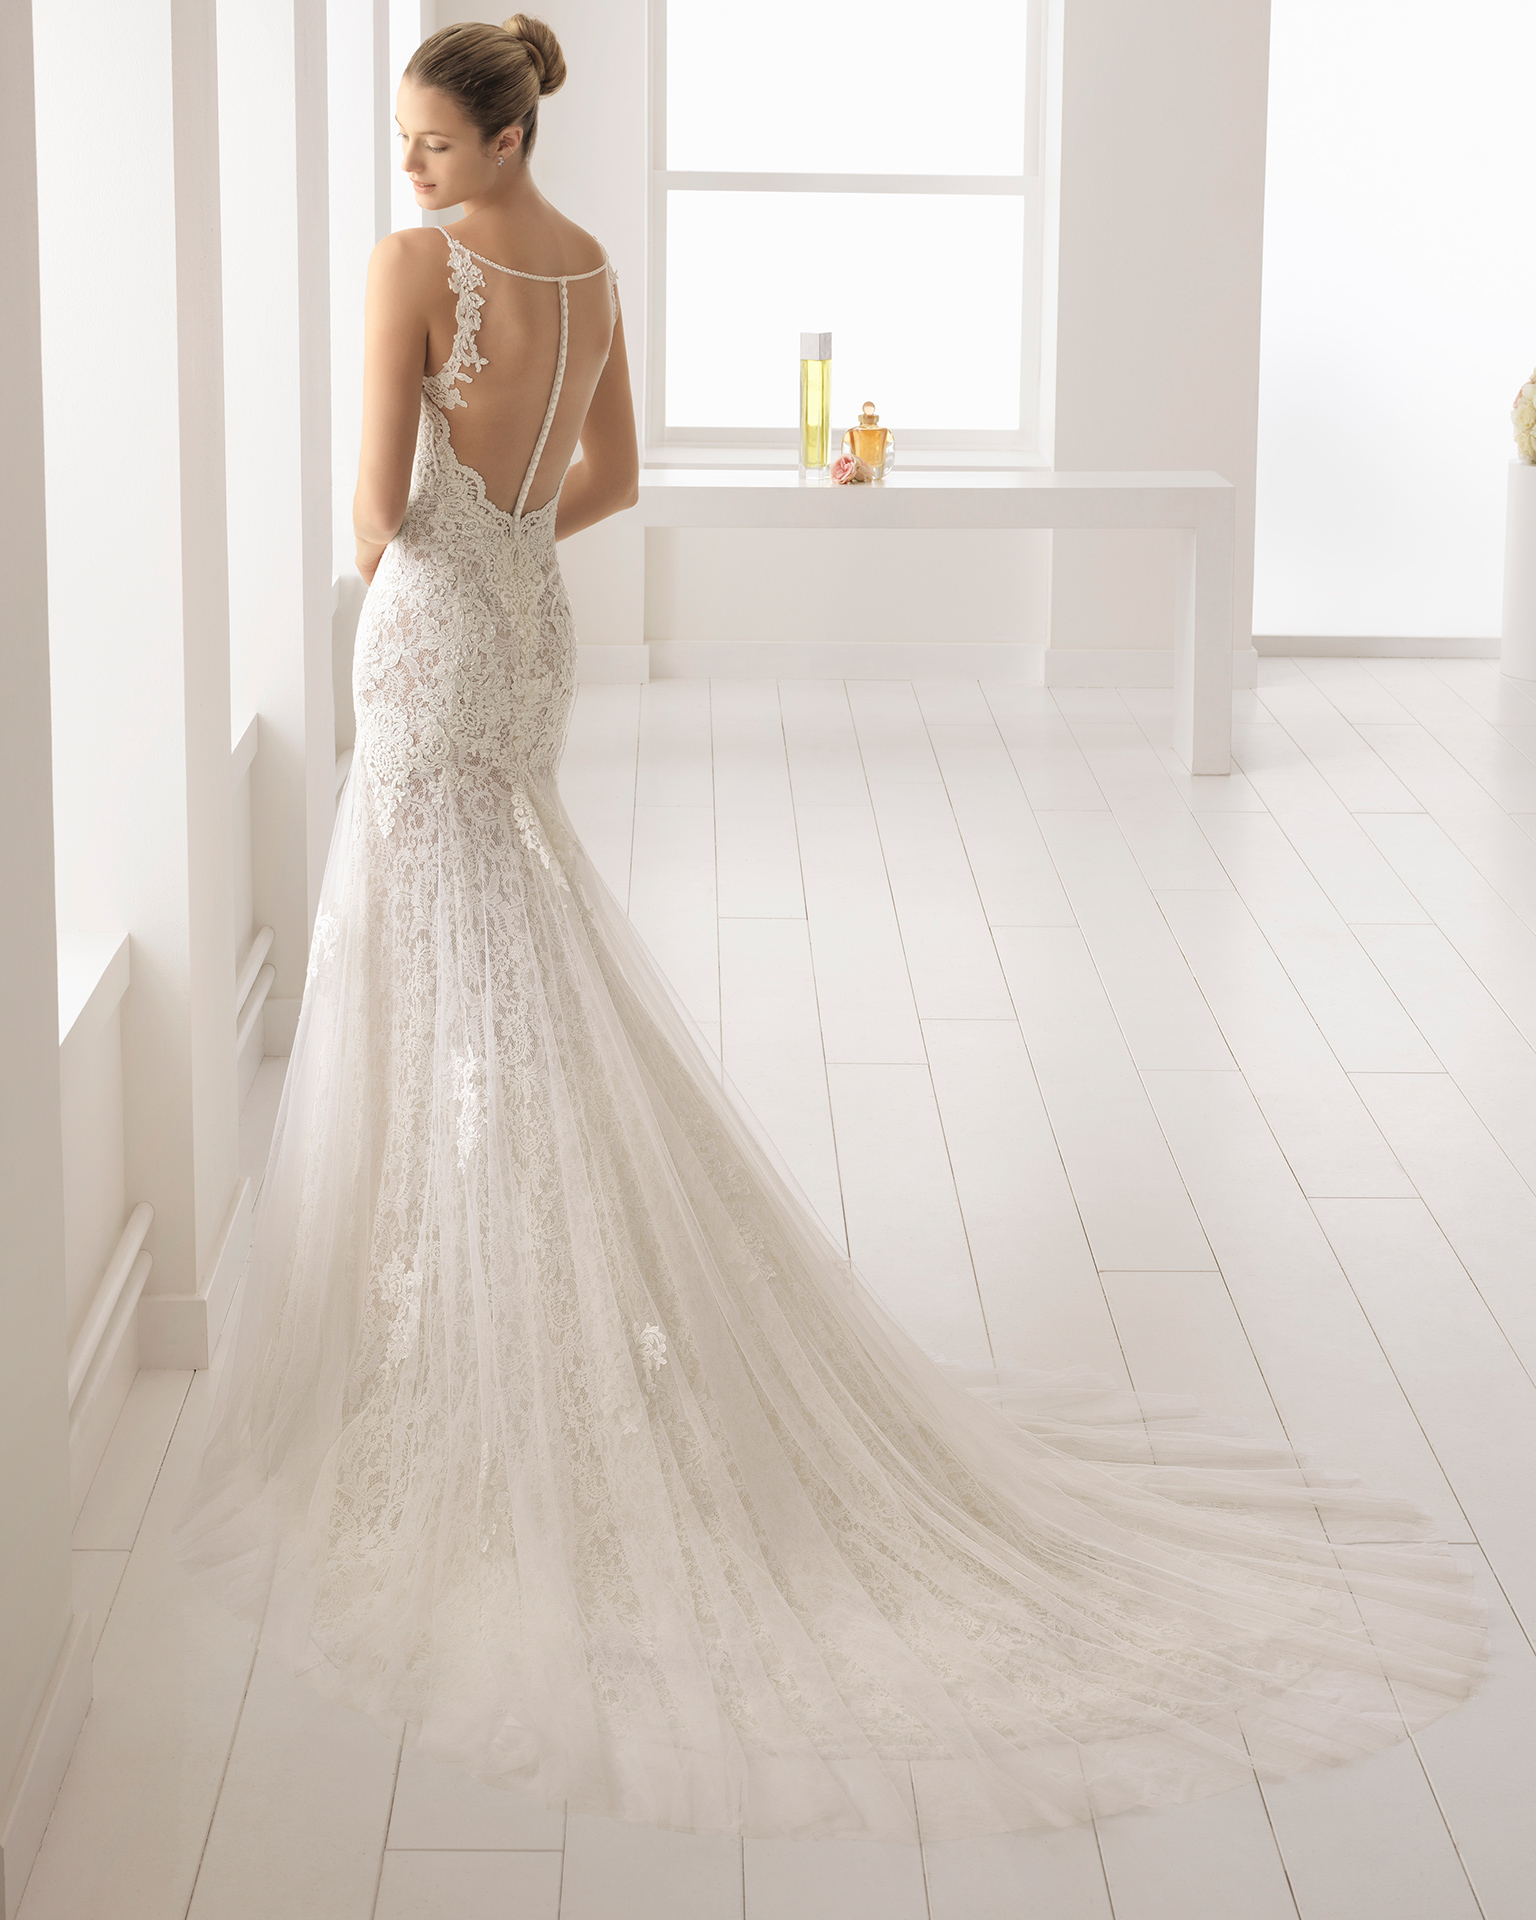 Mermaid-style beaded lace wedding dress with sheer inserts, sweetheart neckline and tattoo-effect back, in ivory.